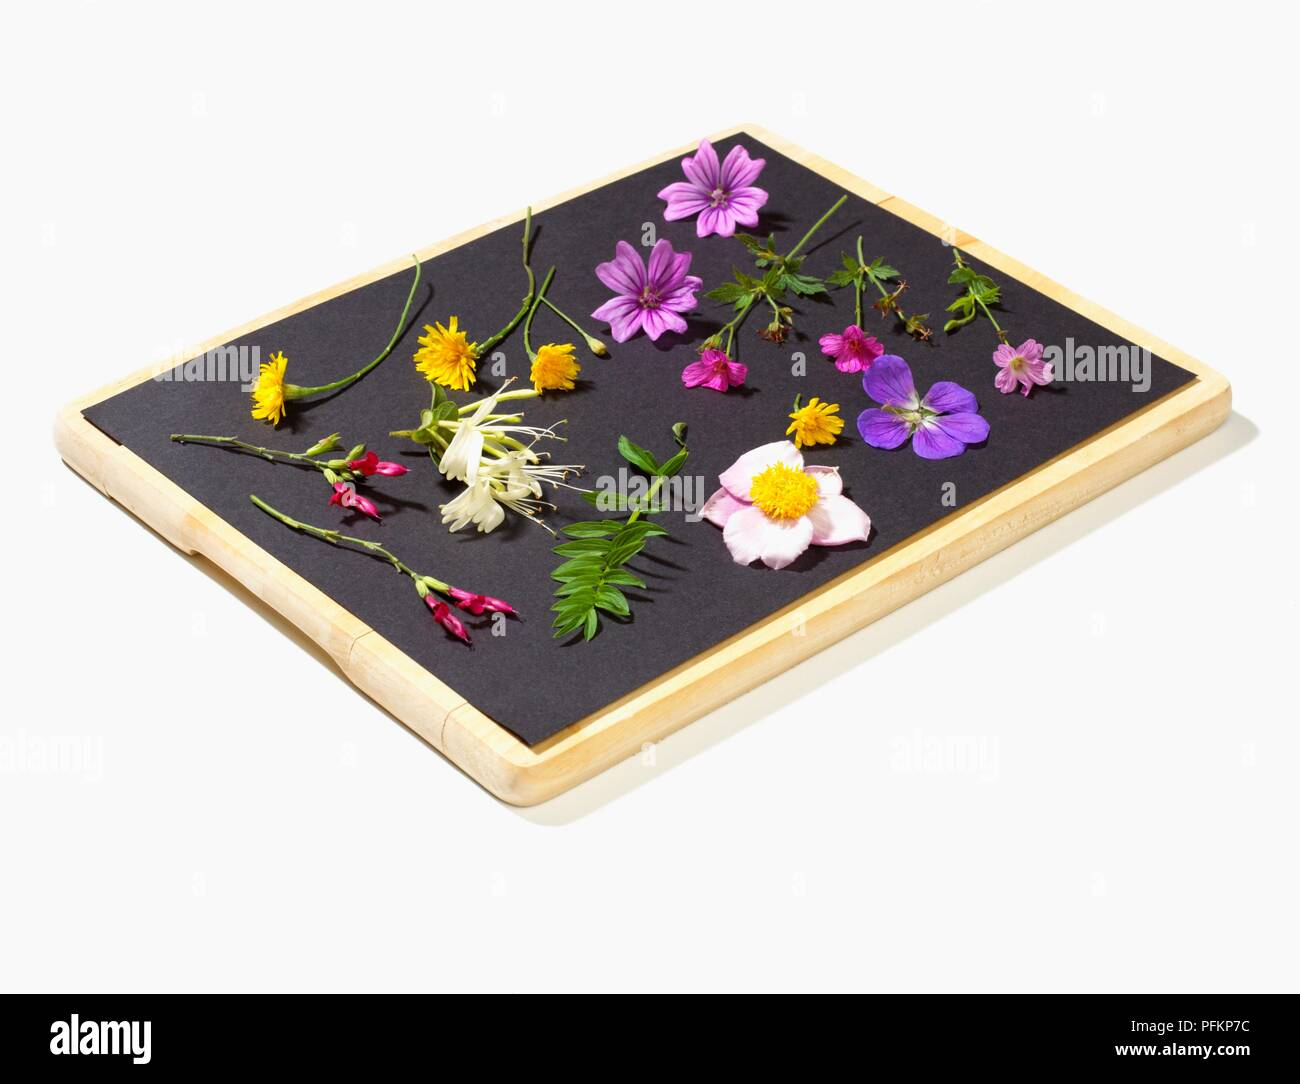 Fresh Flowers Laid Out On Blotting Paper Pressing Flowers Stock